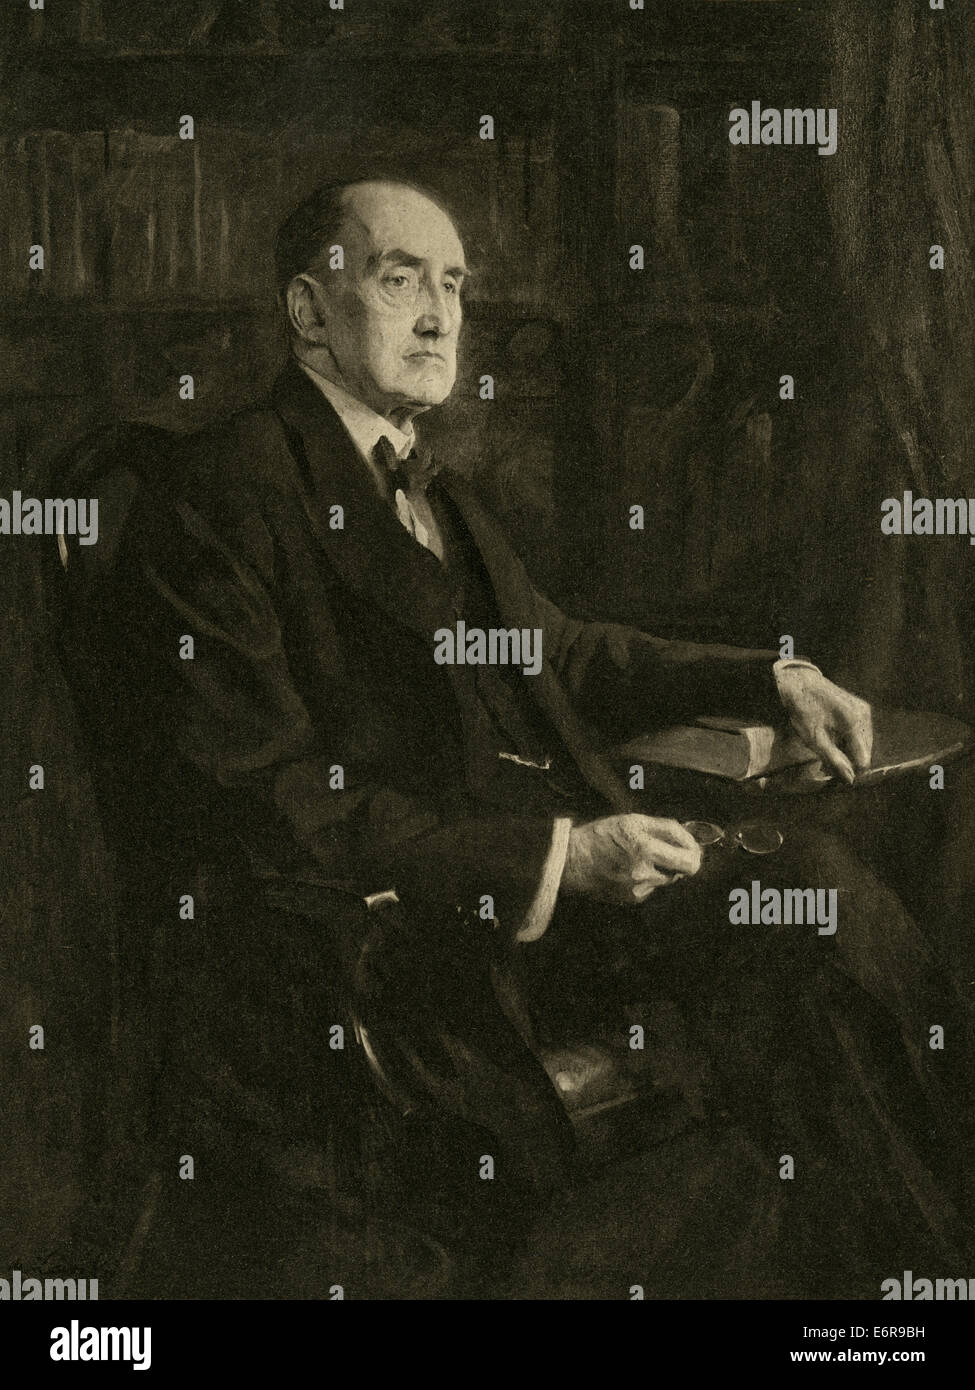 Sir Edward Henry Carson, Baron Carson PC, PC (Ire.), Kt, KC (9 February 1854 - 22 October 1935), known as Lord Carson, - Stock Image